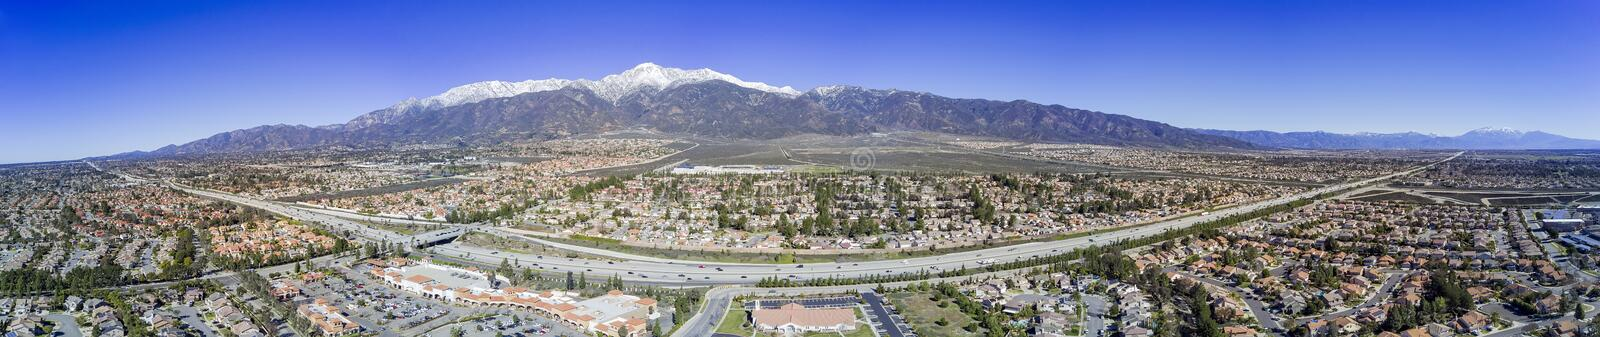 Aerial view of Rancho Cucamonga area royalty free stock images